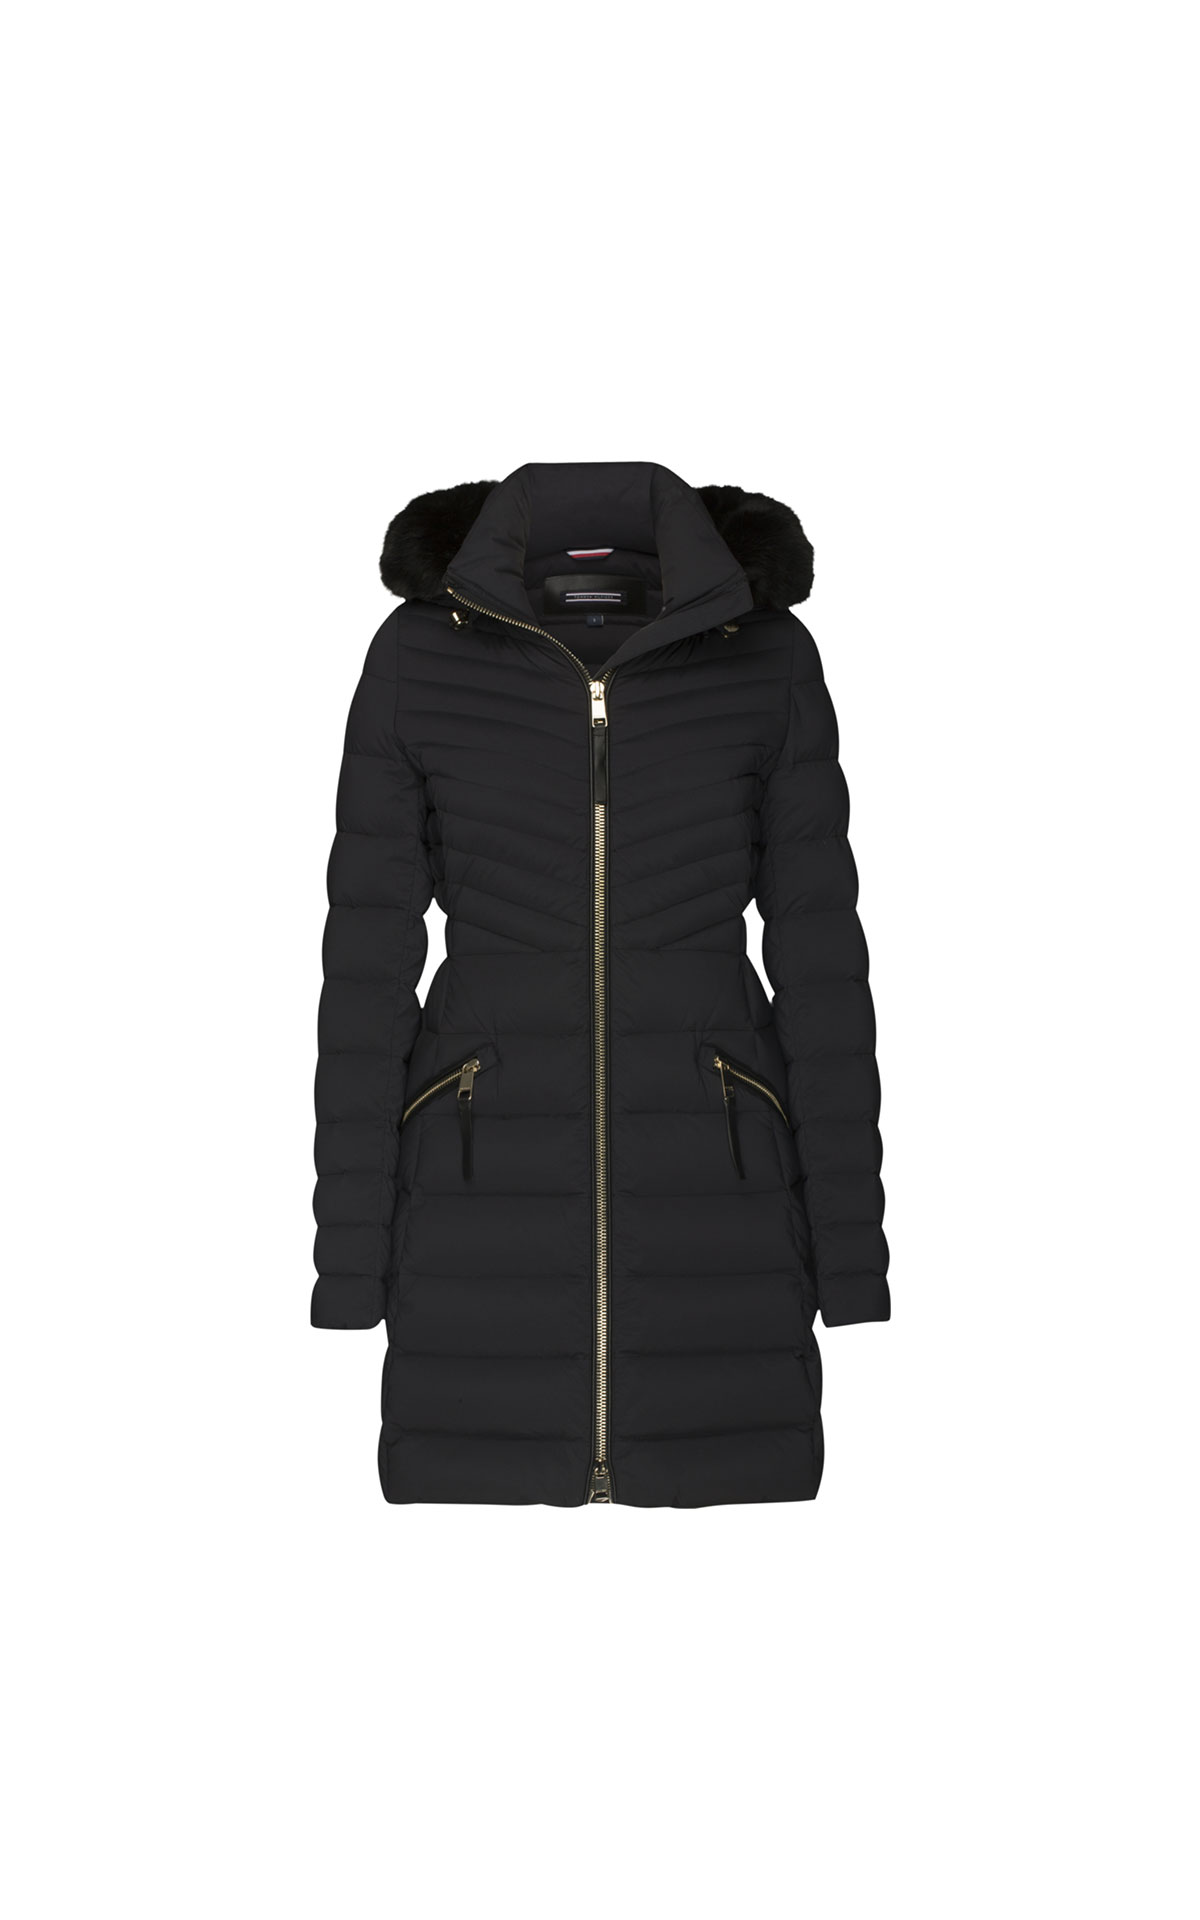 Tommy Hilfiger Women's New Nikki Coat at The Bicester Village Shopping Collection